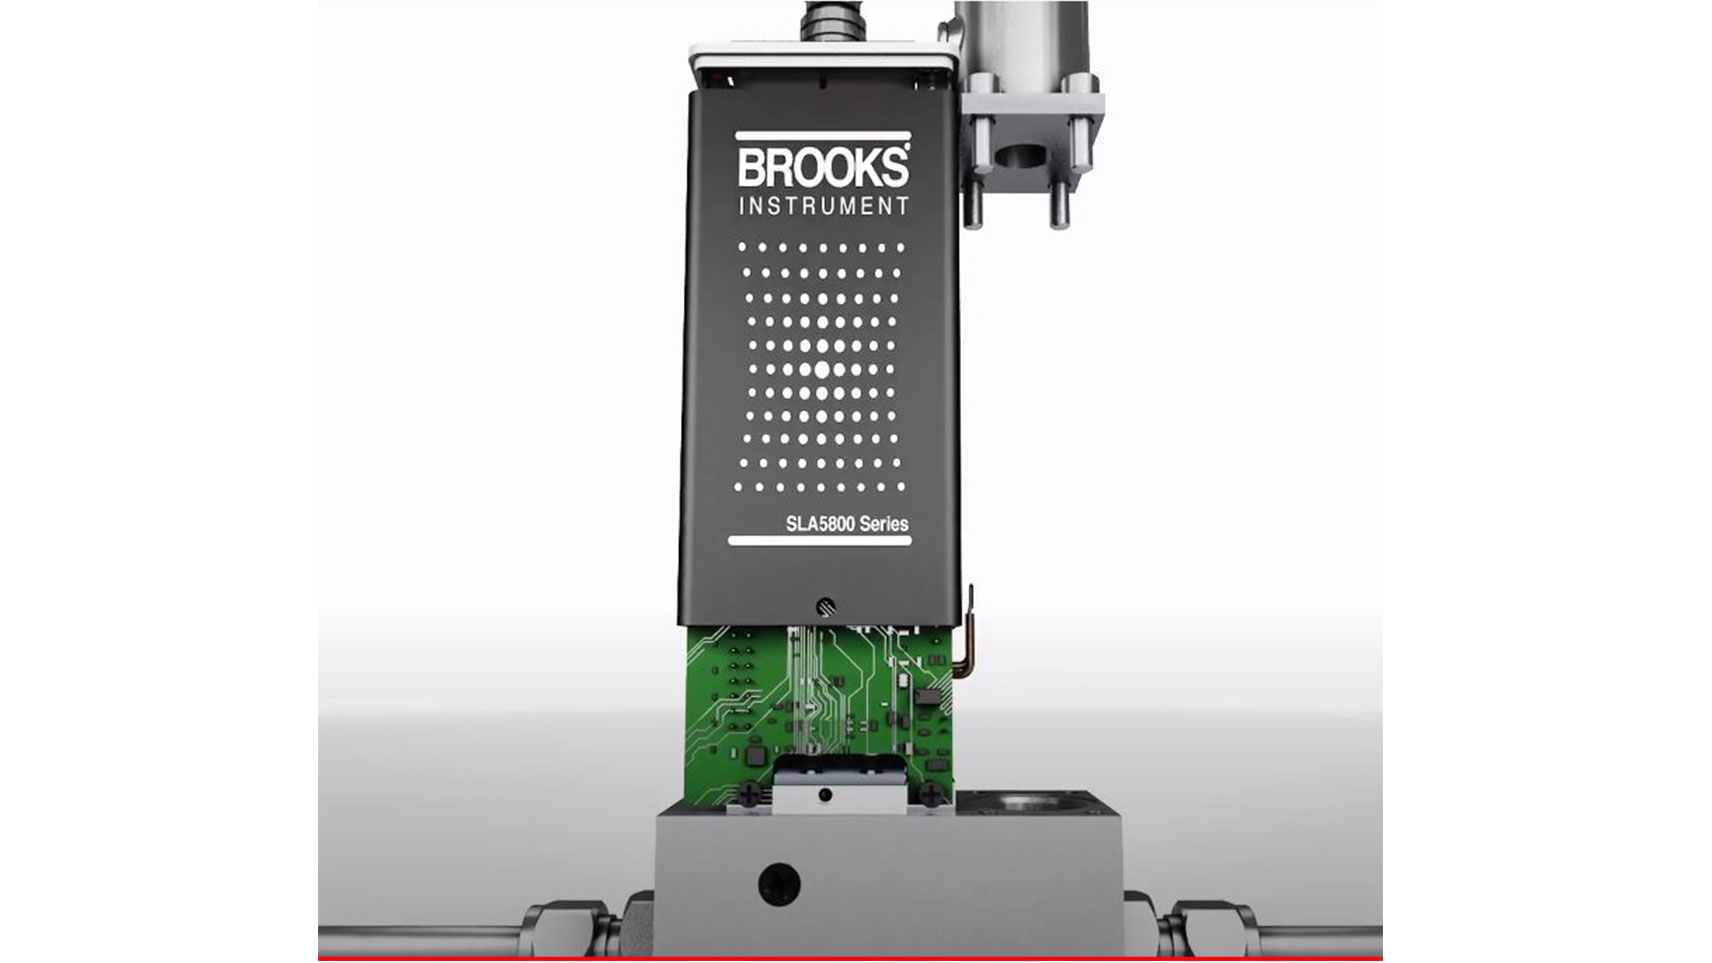 Brooks Instrument Mass Flow Controllers - Principle of Operation